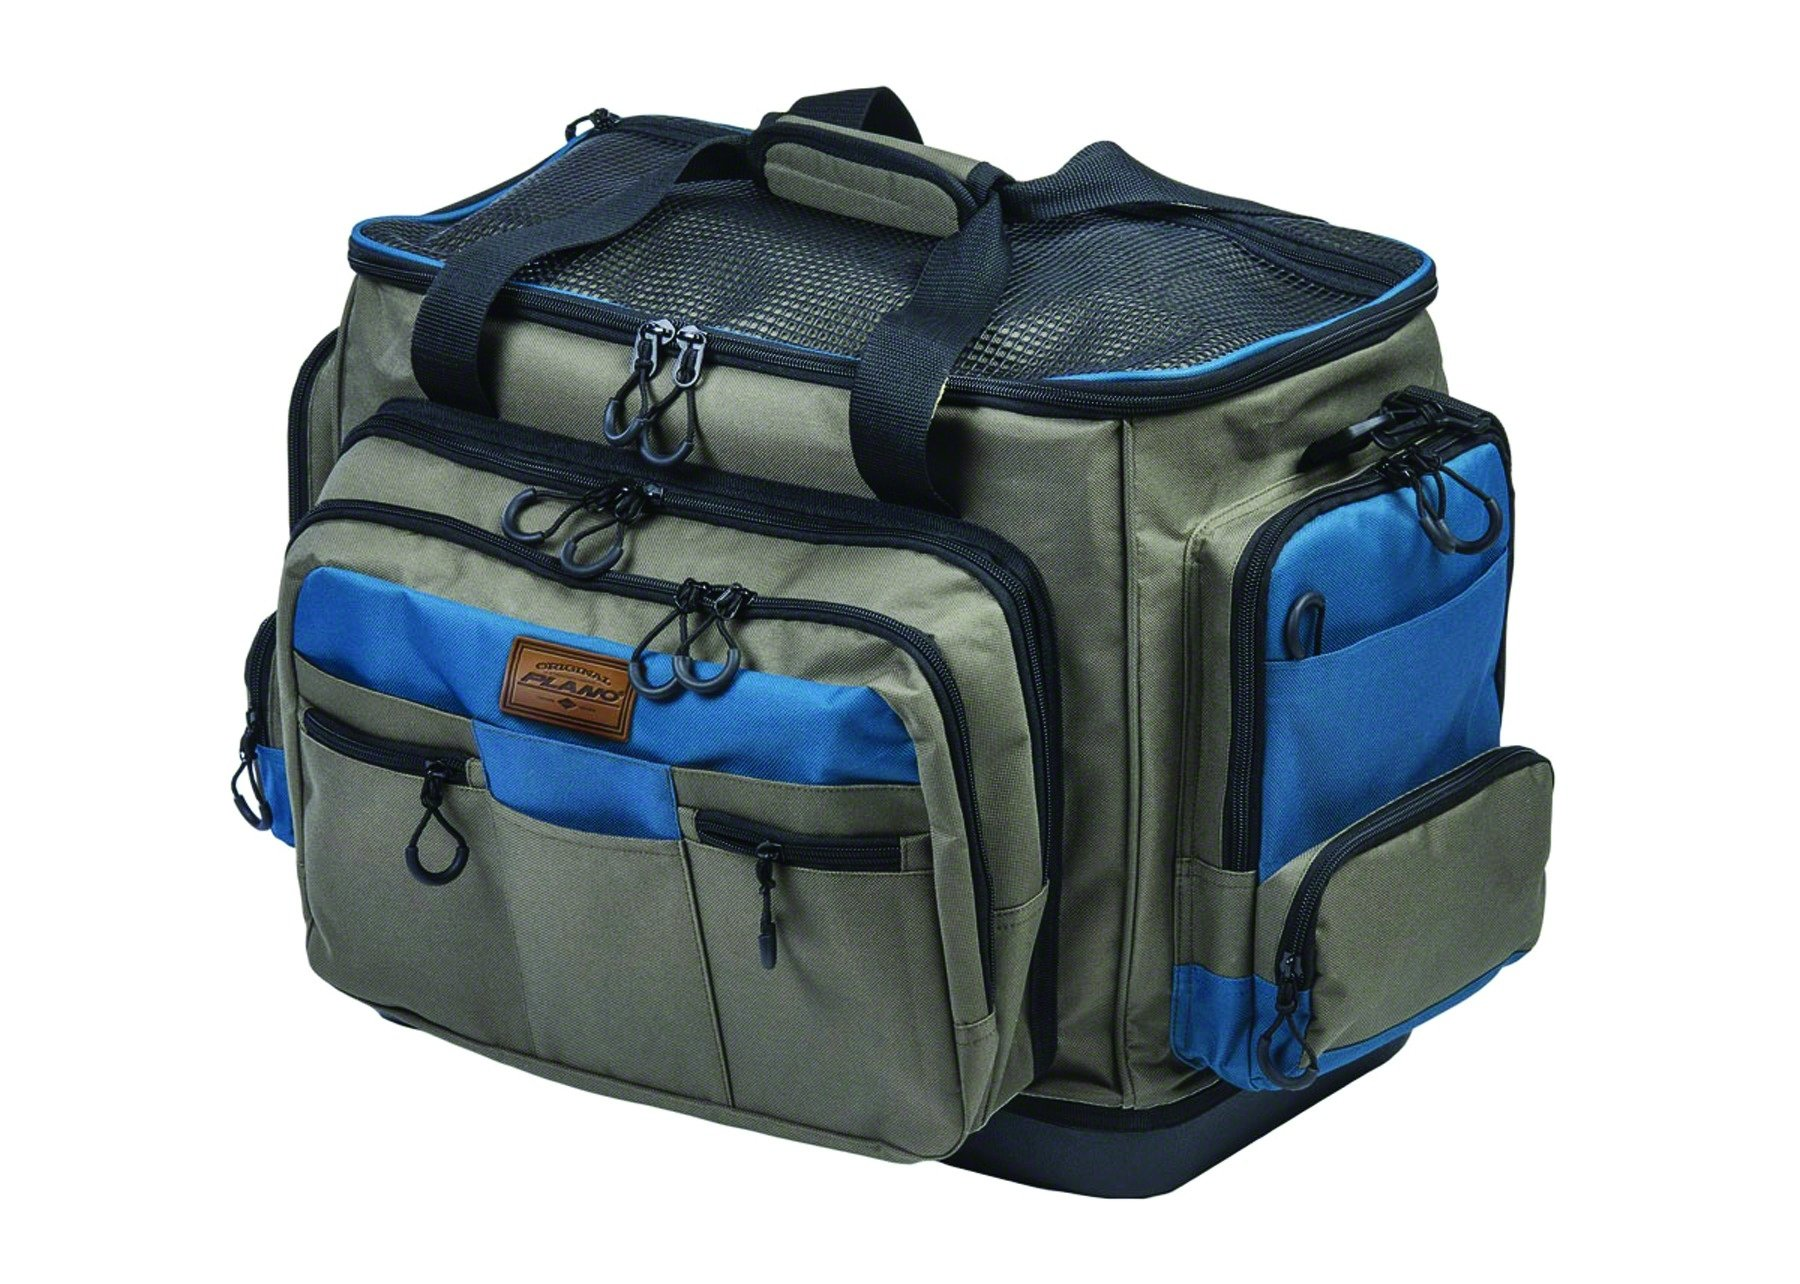 Plano 463700 m-Series Tackle Bag